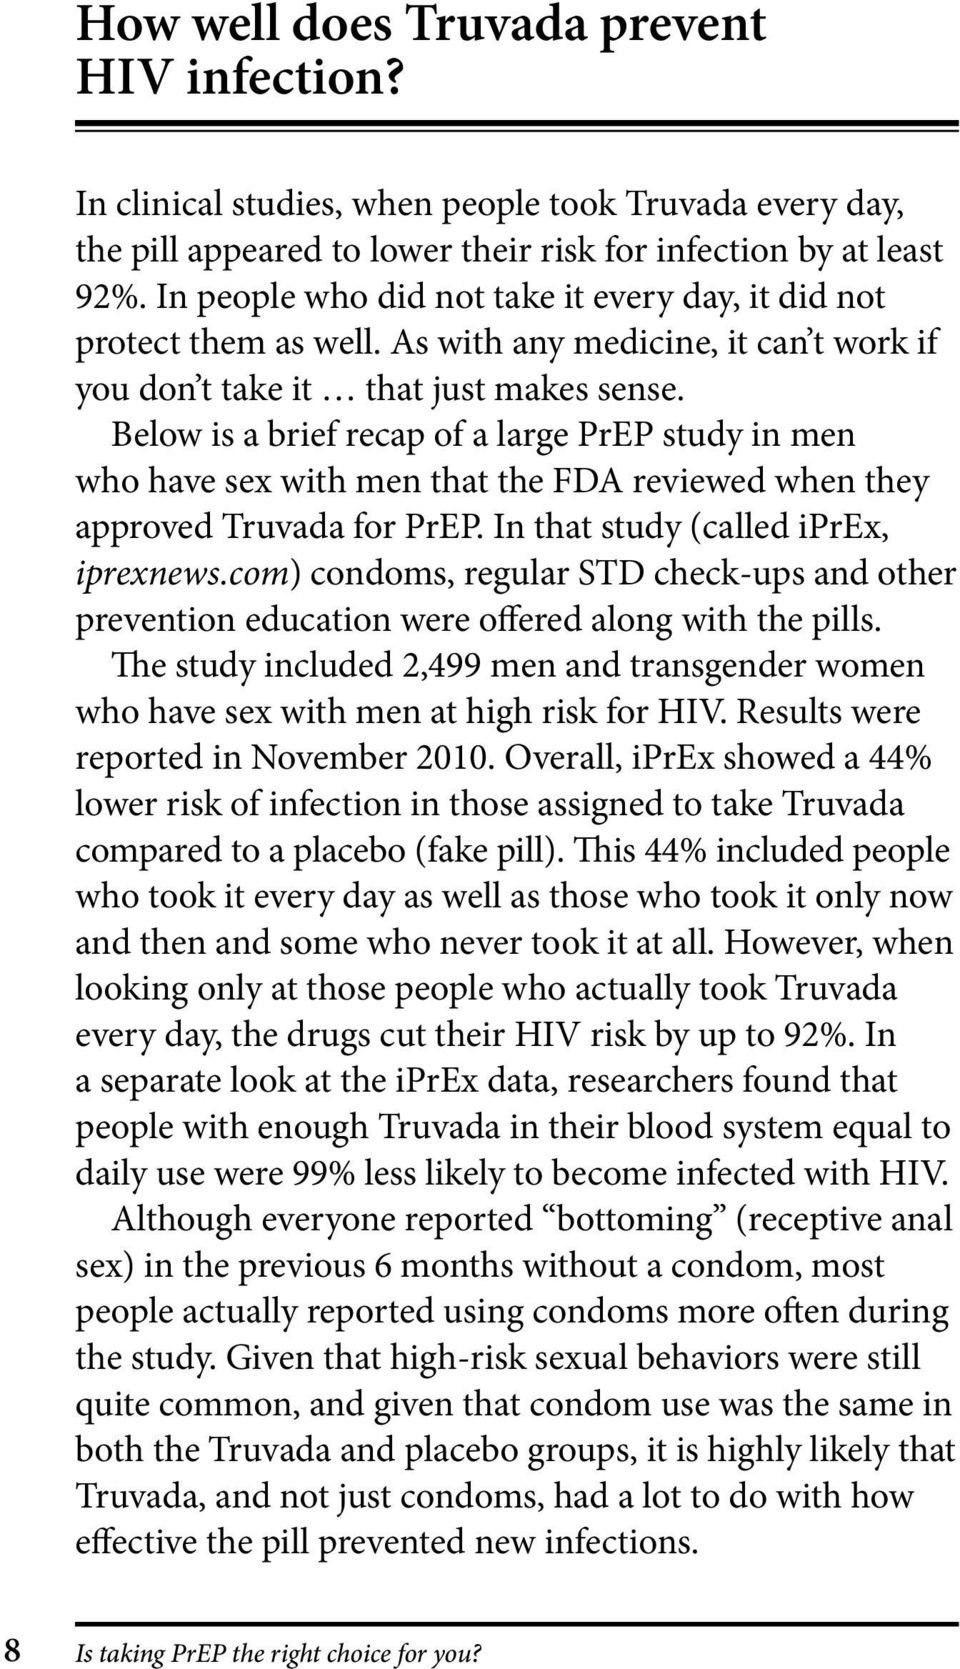 Below is a brief recap of a large PrEP study in men who have sex with men that the FDA reviewed when they approved Truvada for PrEP. In that study (called iprex, iprexnews.